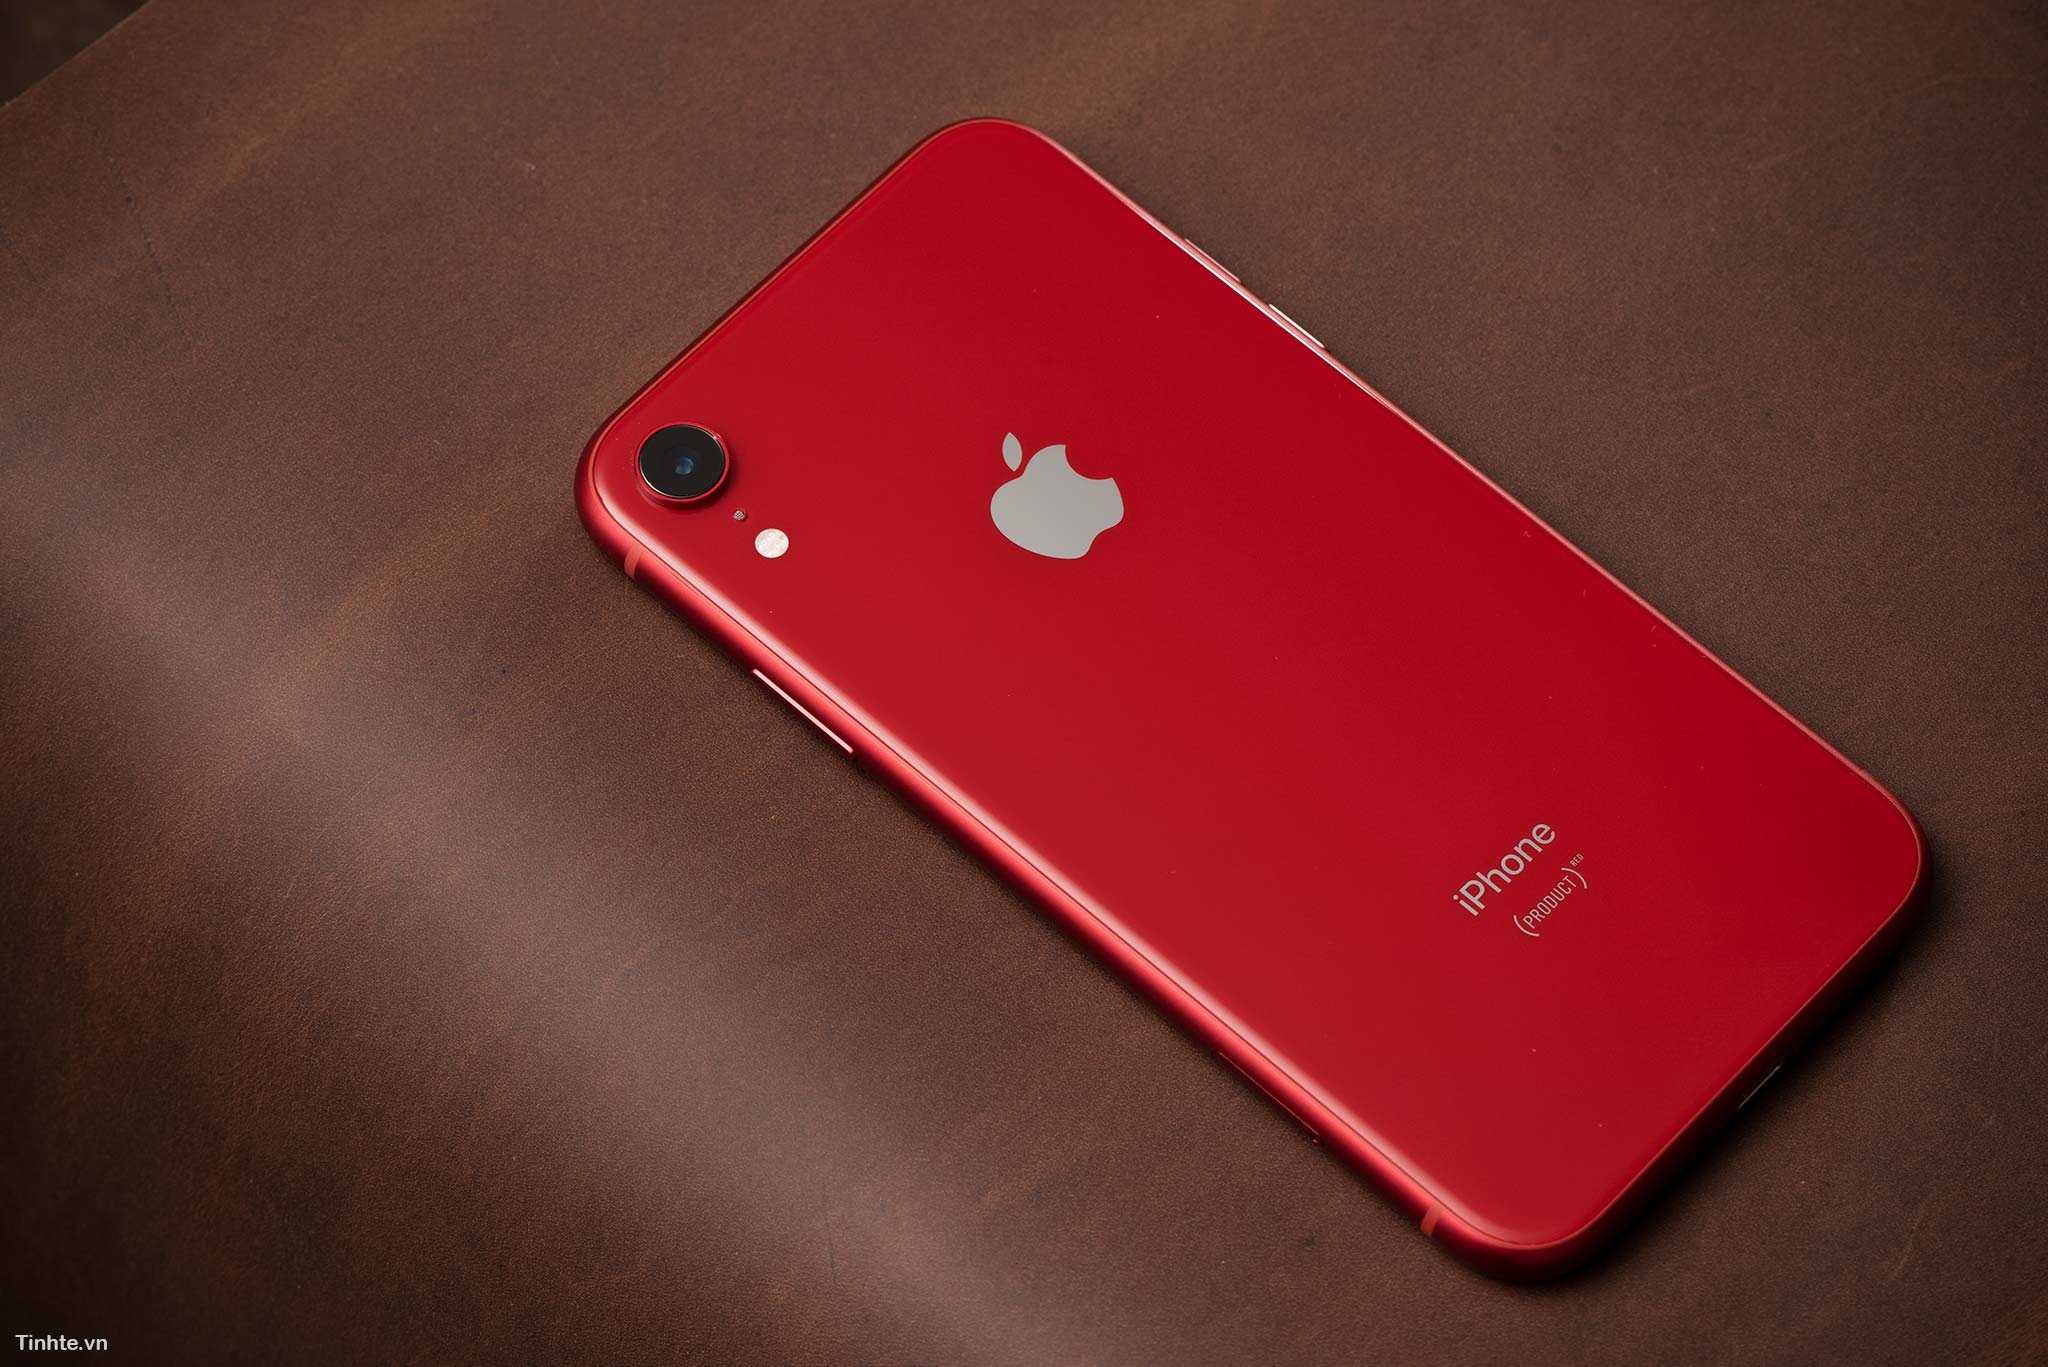 tinhte_tren_tay_iphone_xr_product_red_10.jpg